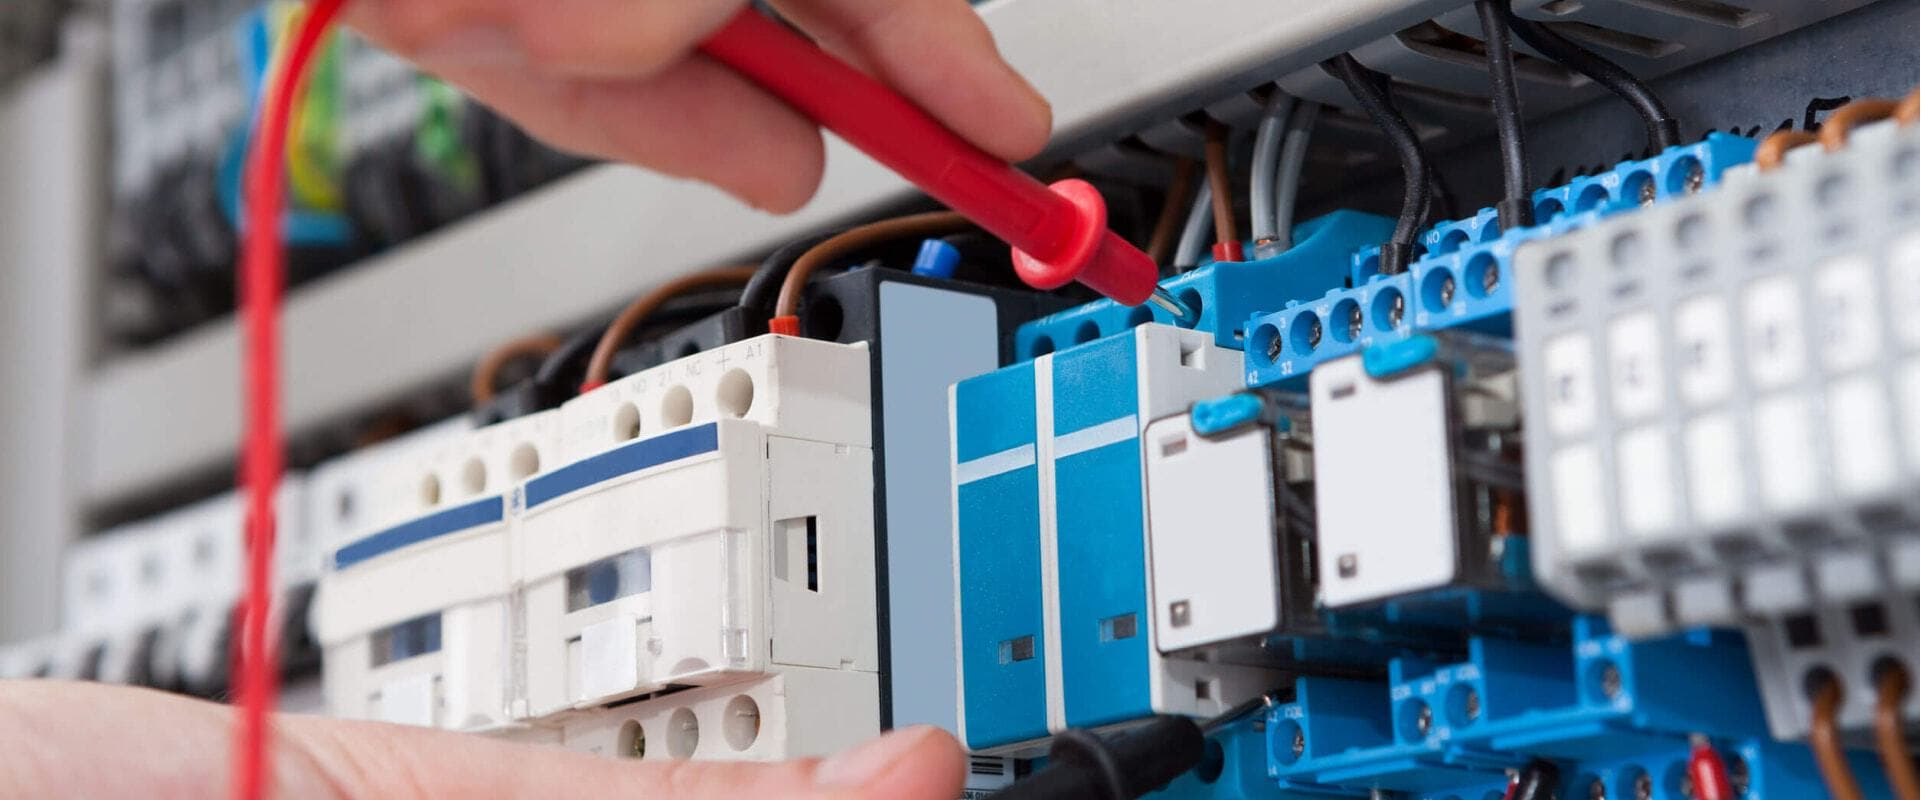 hight resolution of fuse board replacement fuse box replacement cost in irelandfuse box replacement 11